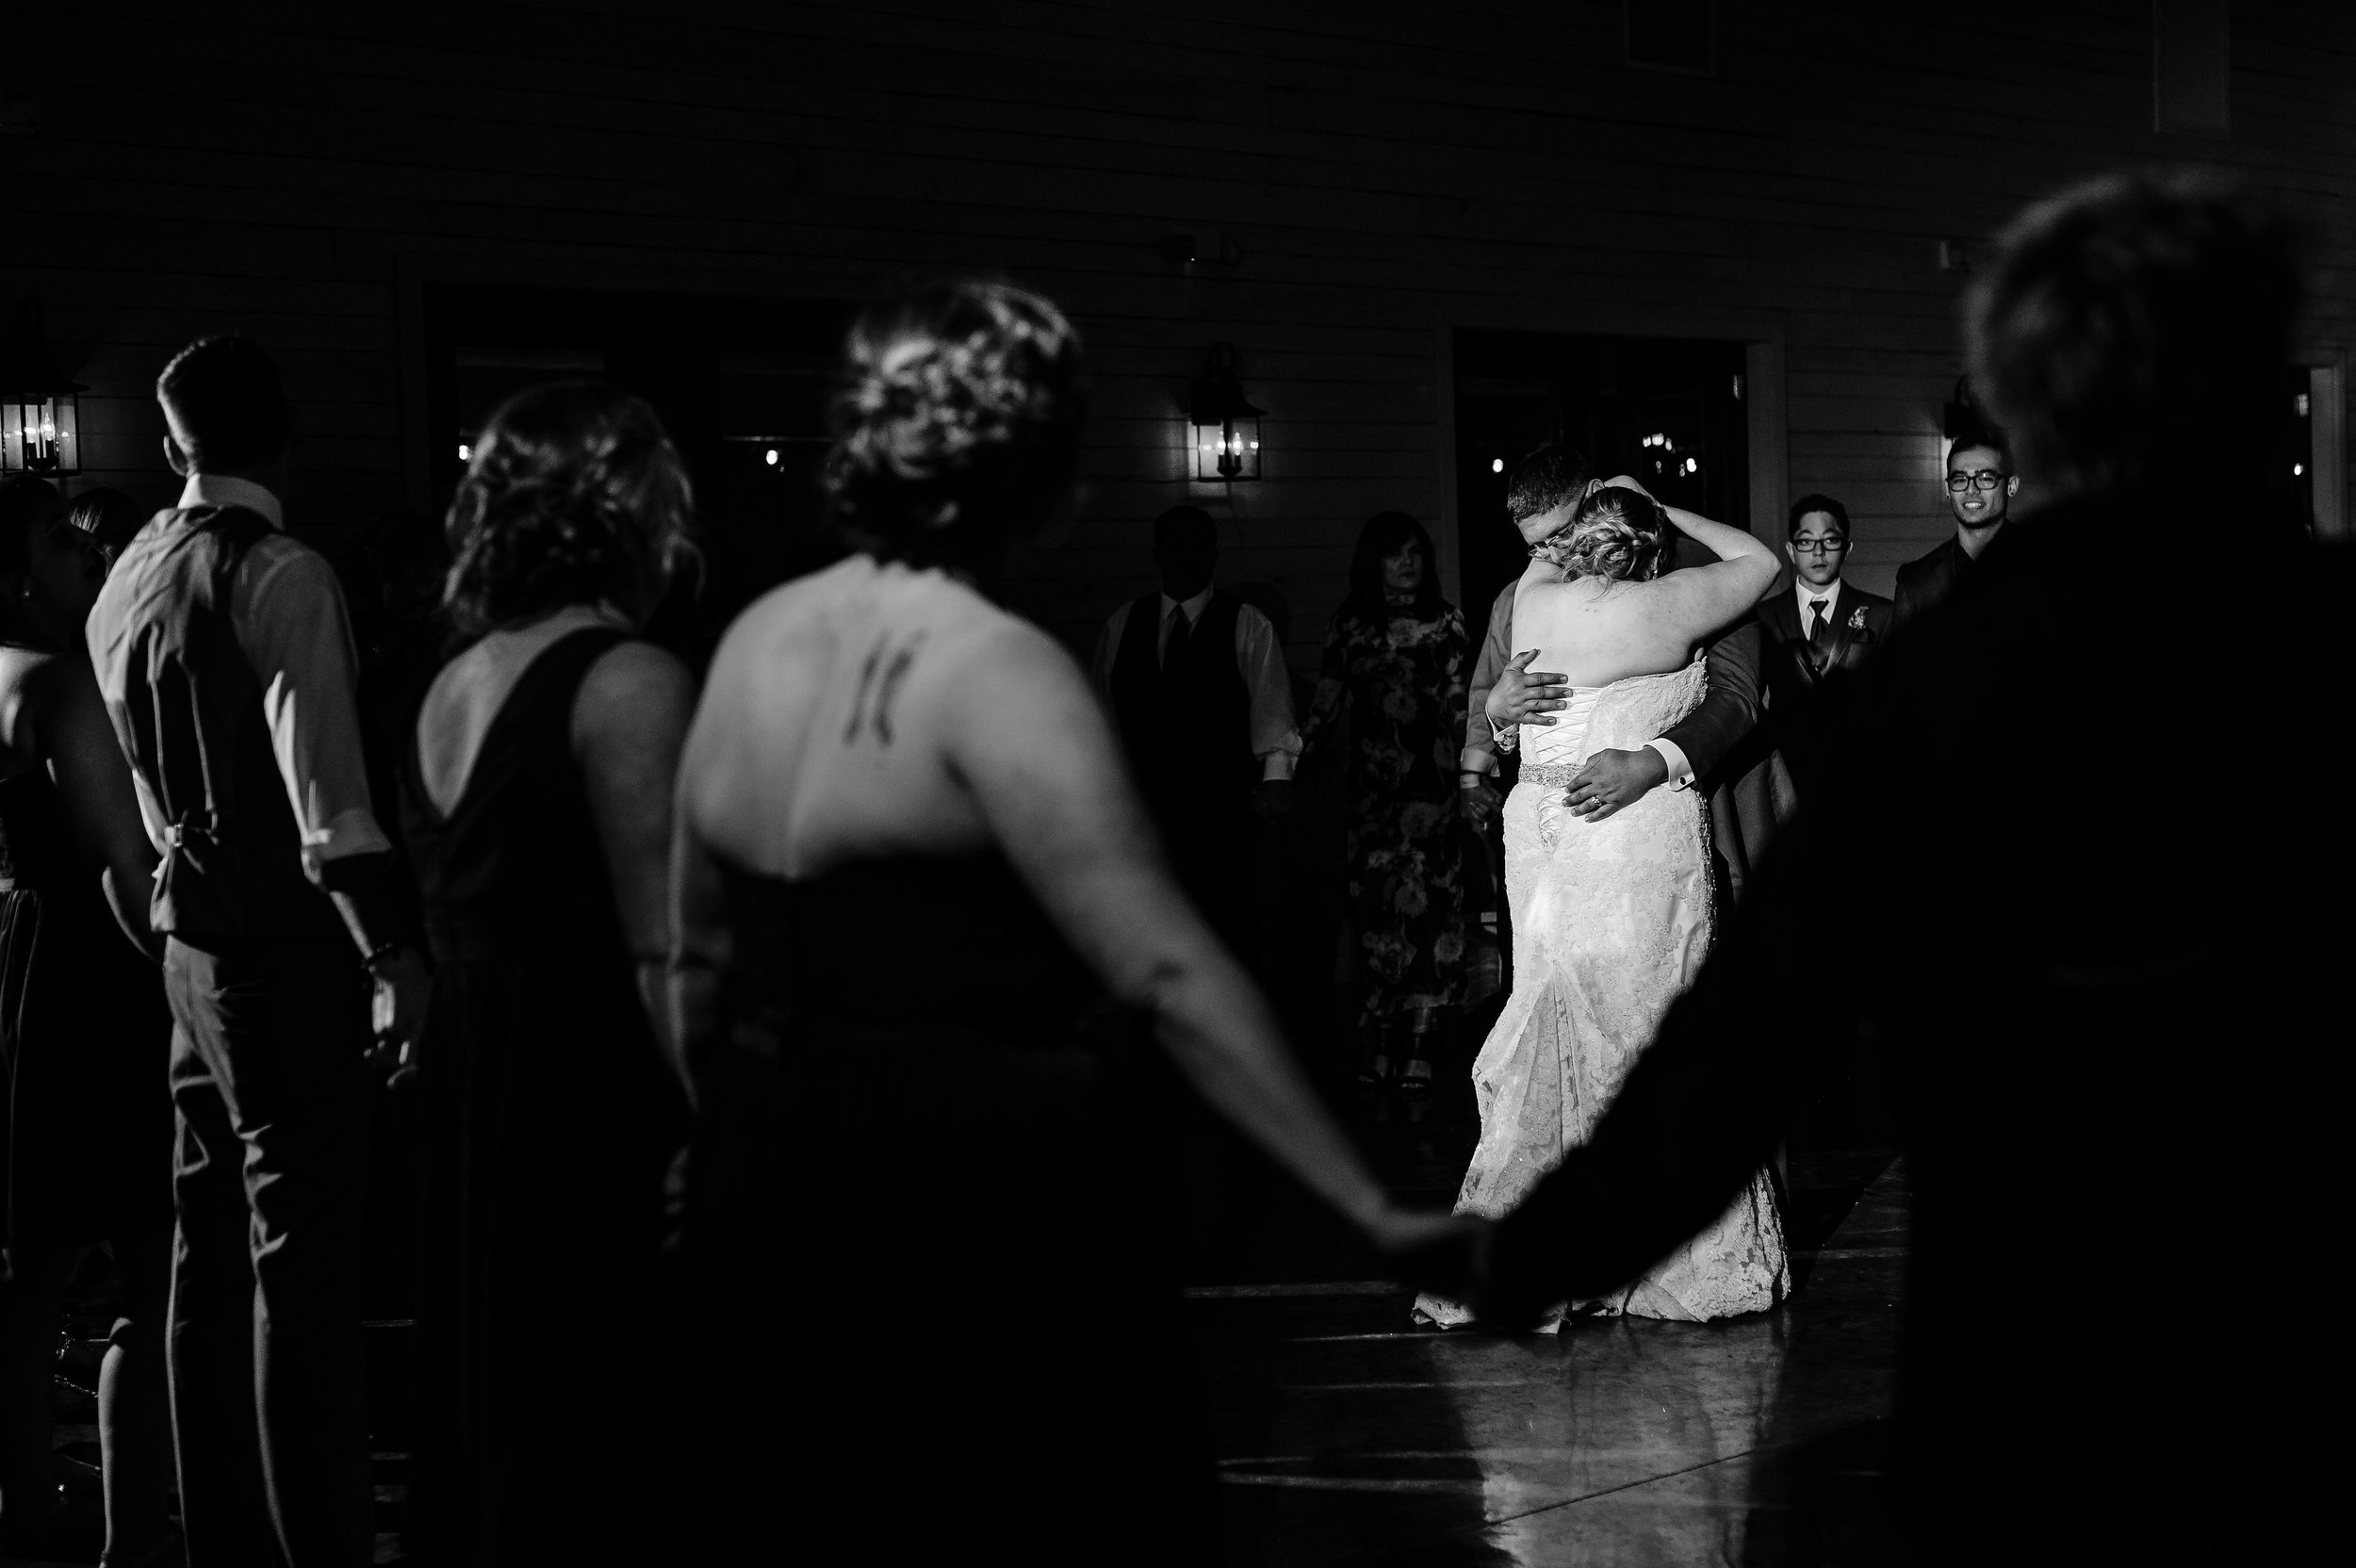 Amanda&Chris_Wedding670.jpg